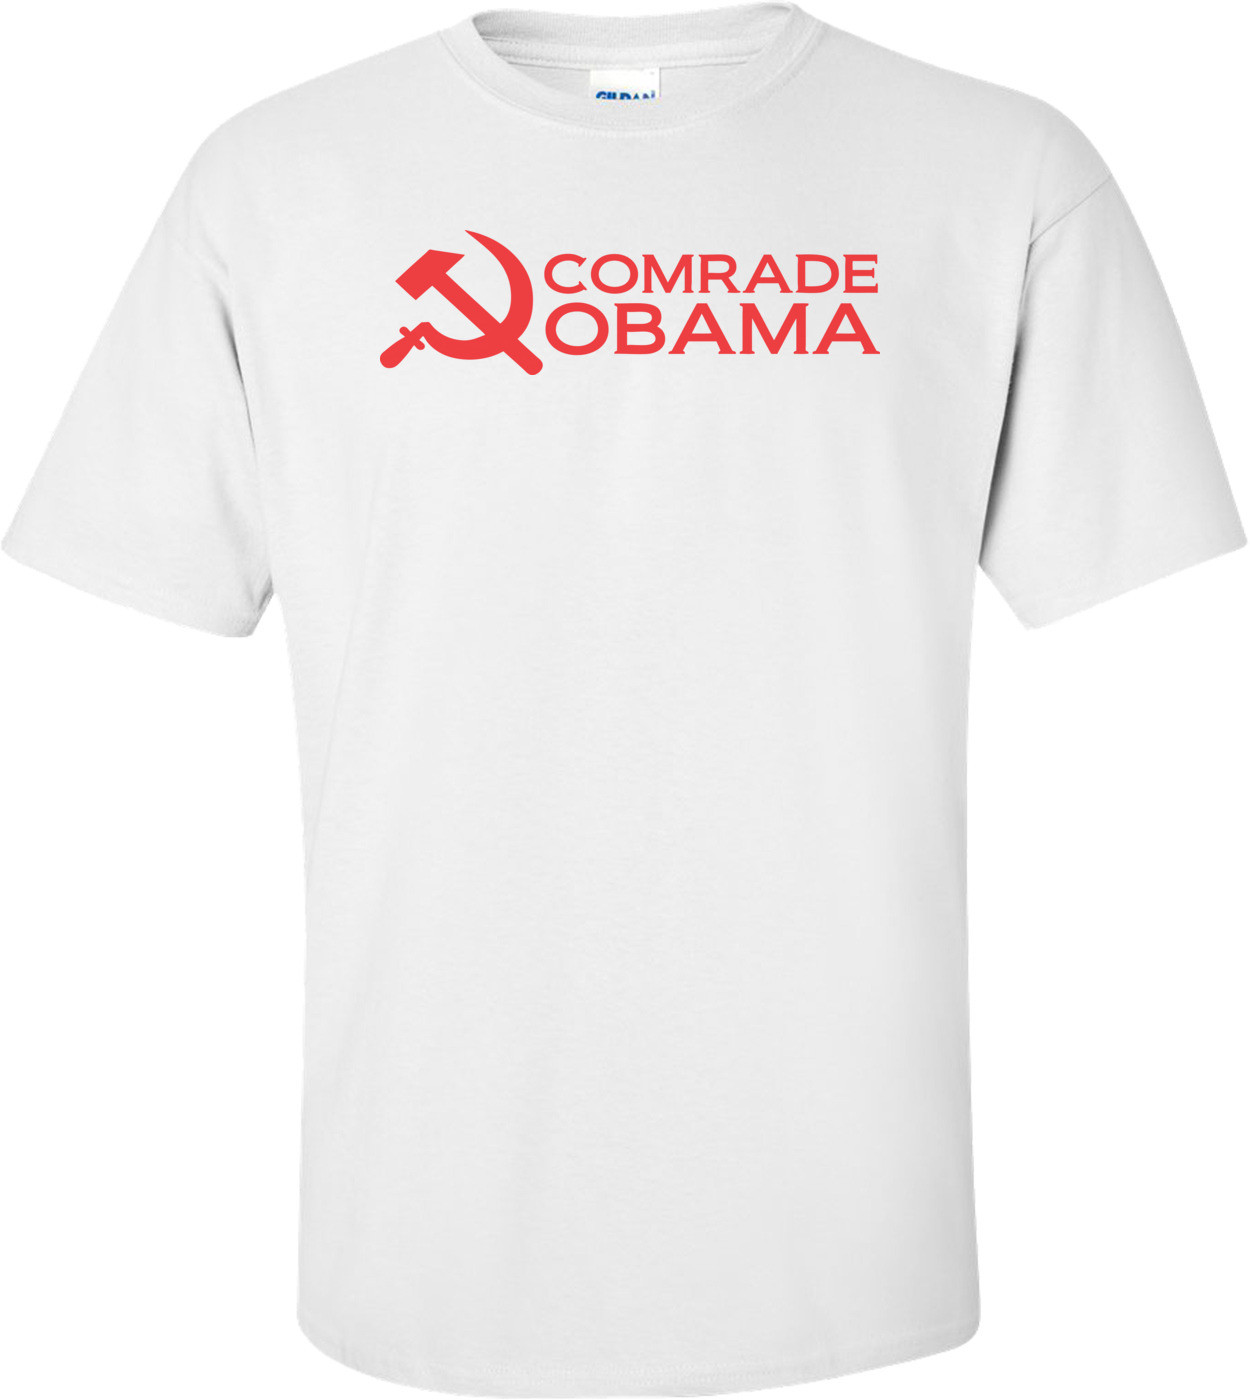 Comrade Obama Anti Obama T-shirt